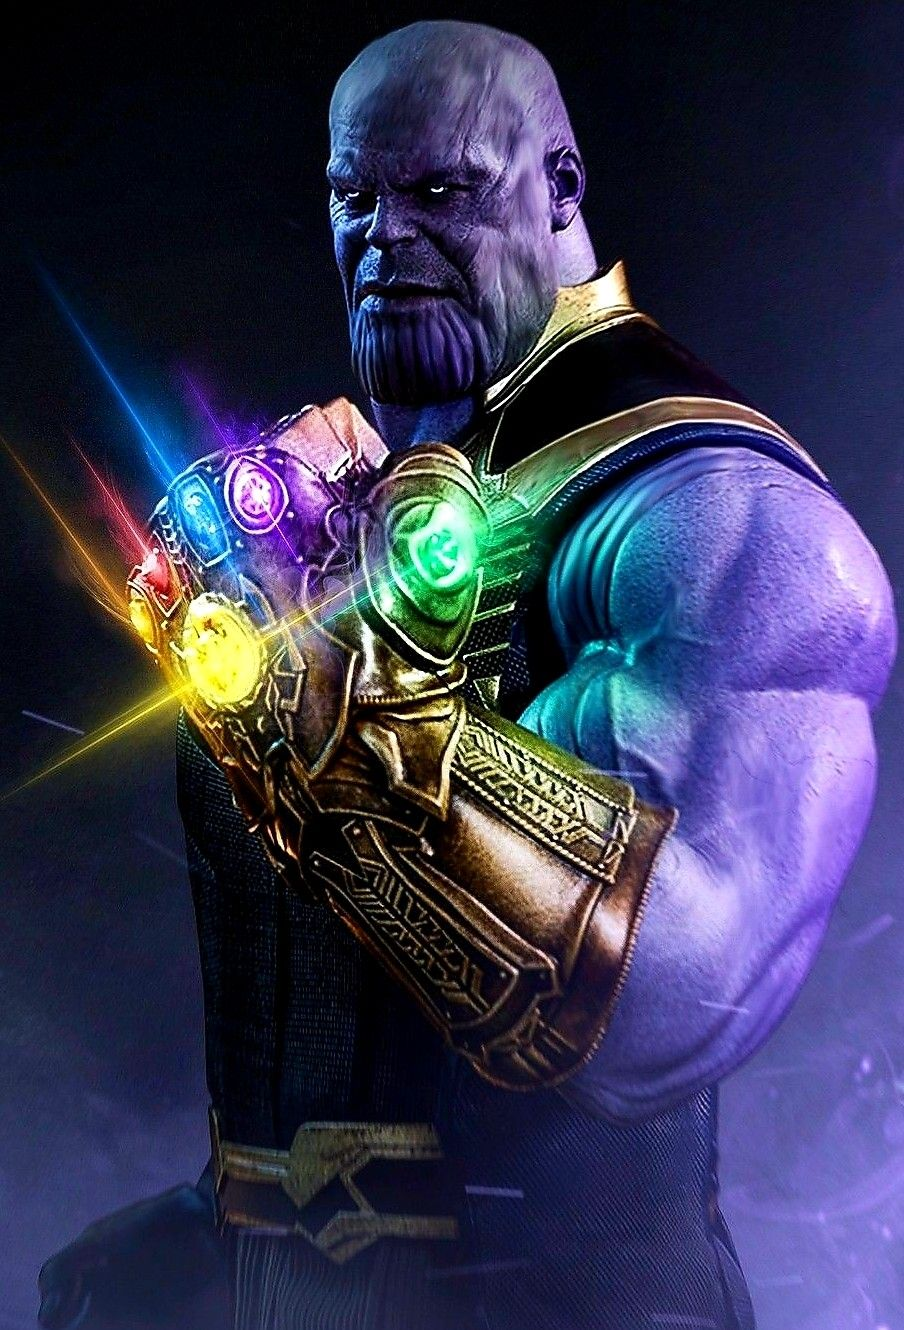 Thanos holding the infinity gauntlet | Villains | Marvel ... Thanos Infinity Gauntlet Movie